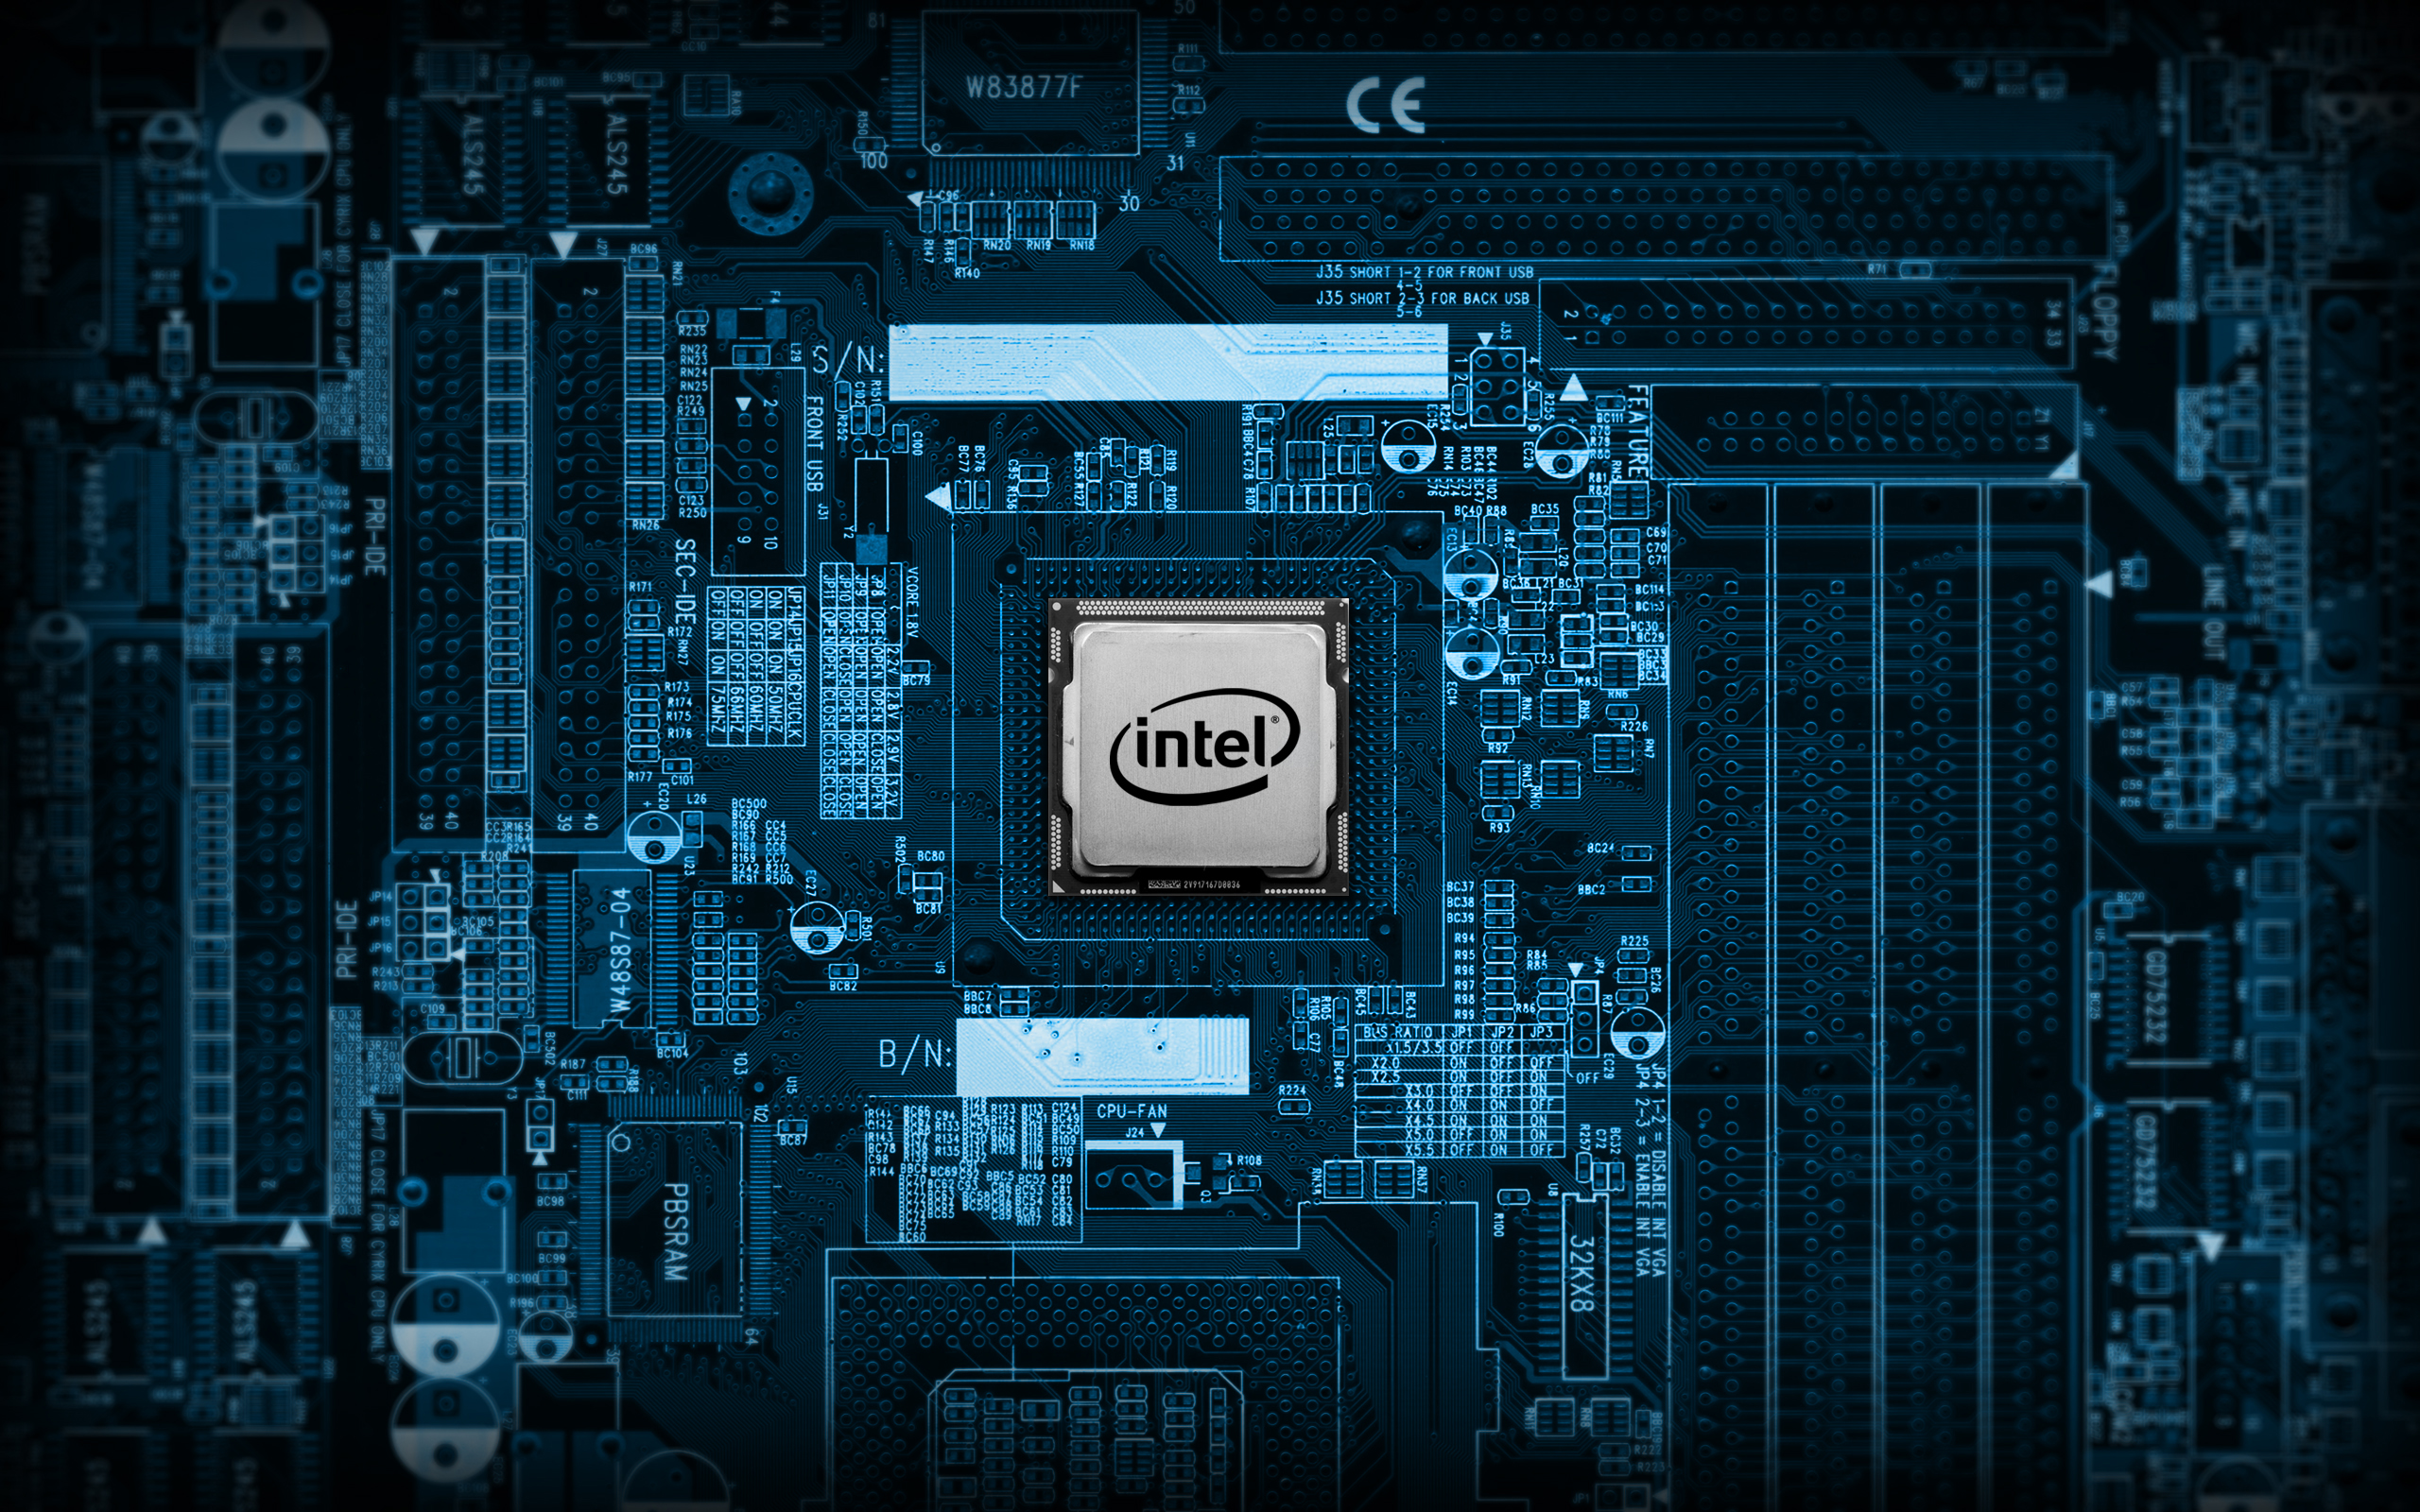 Intel Chip Wallpaper 2560x1600